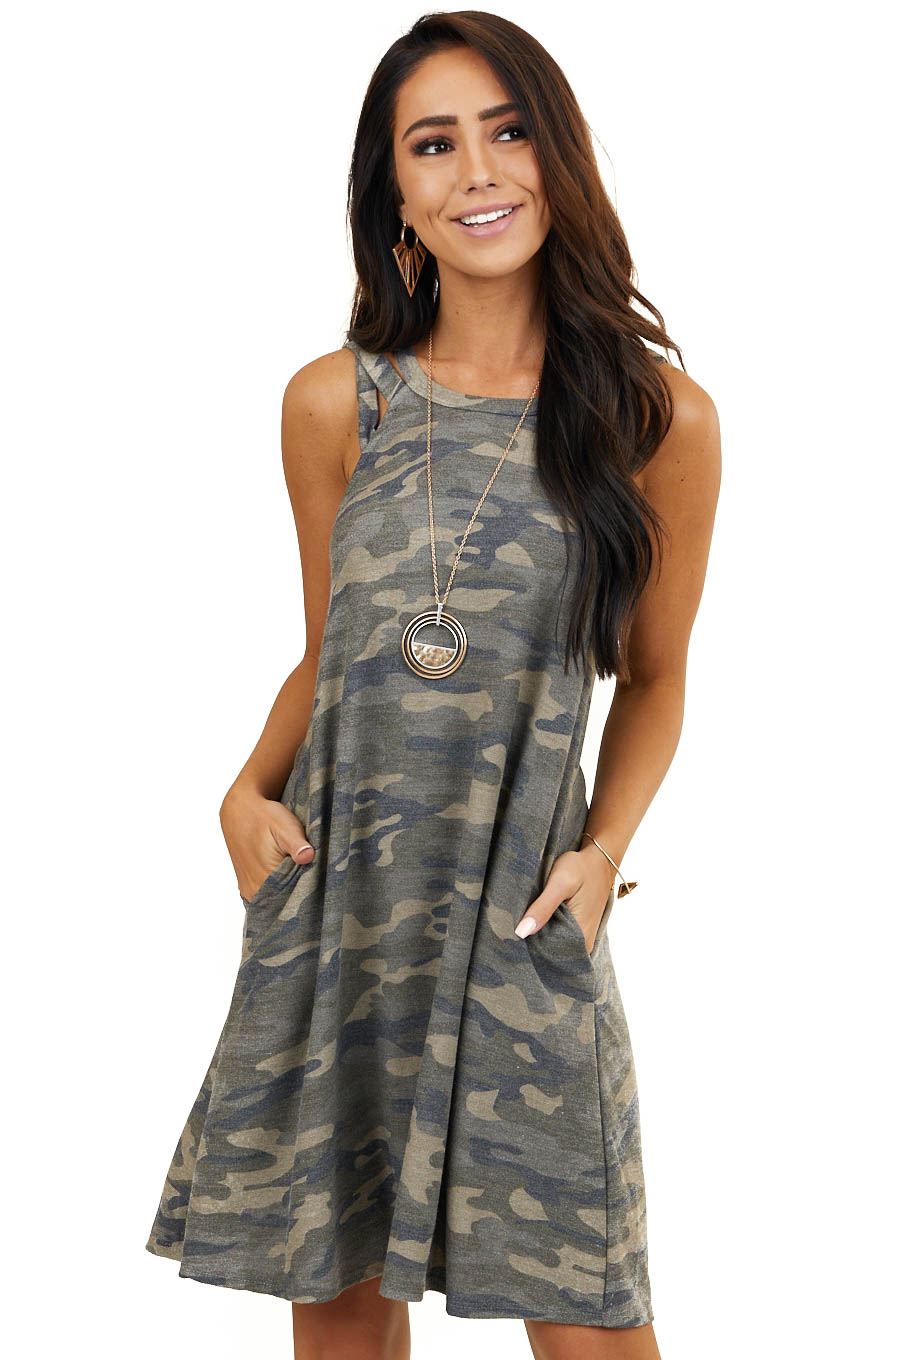 Olive Camo Short Dress with Side Pockets and Strappy Detail